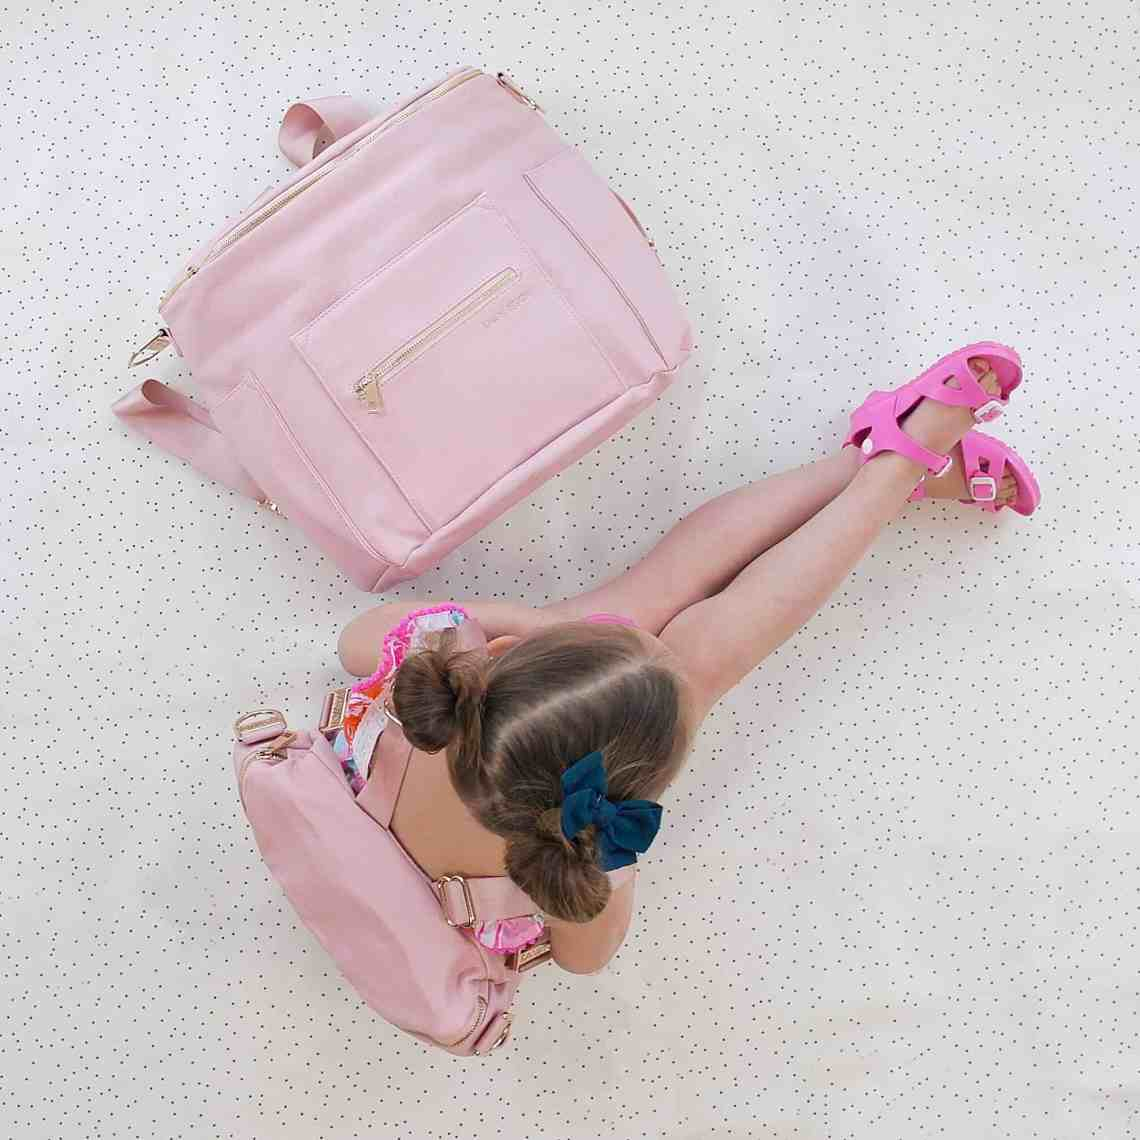 little girl with pink backpack next to pink diaper bag